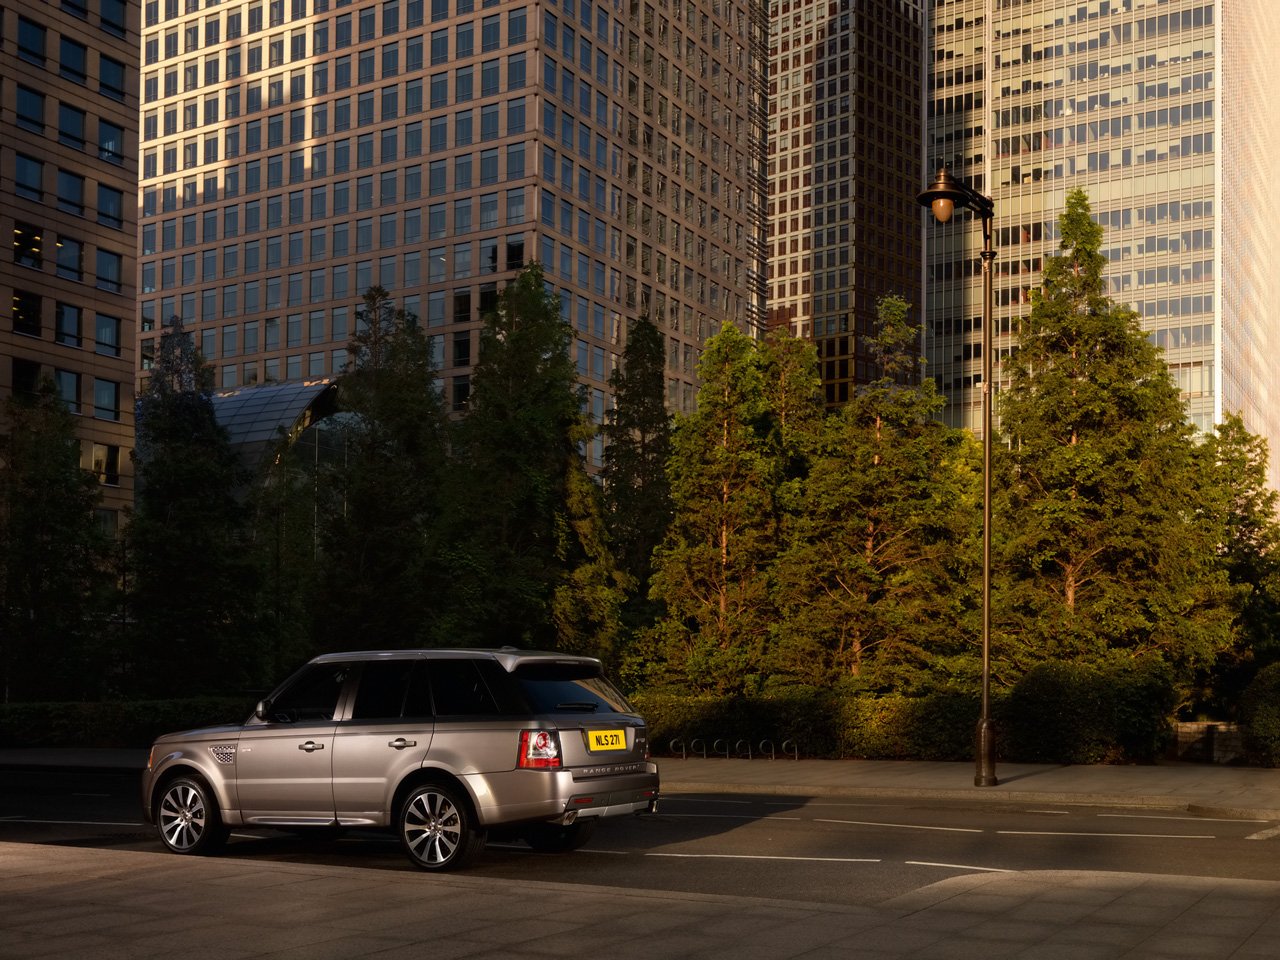 http://www.thesupercars.org/wp-content/uploads/2010/01/2010-Land-Rover-Range-Rover-Sport-Autobiography-Rear-side-view.jpg